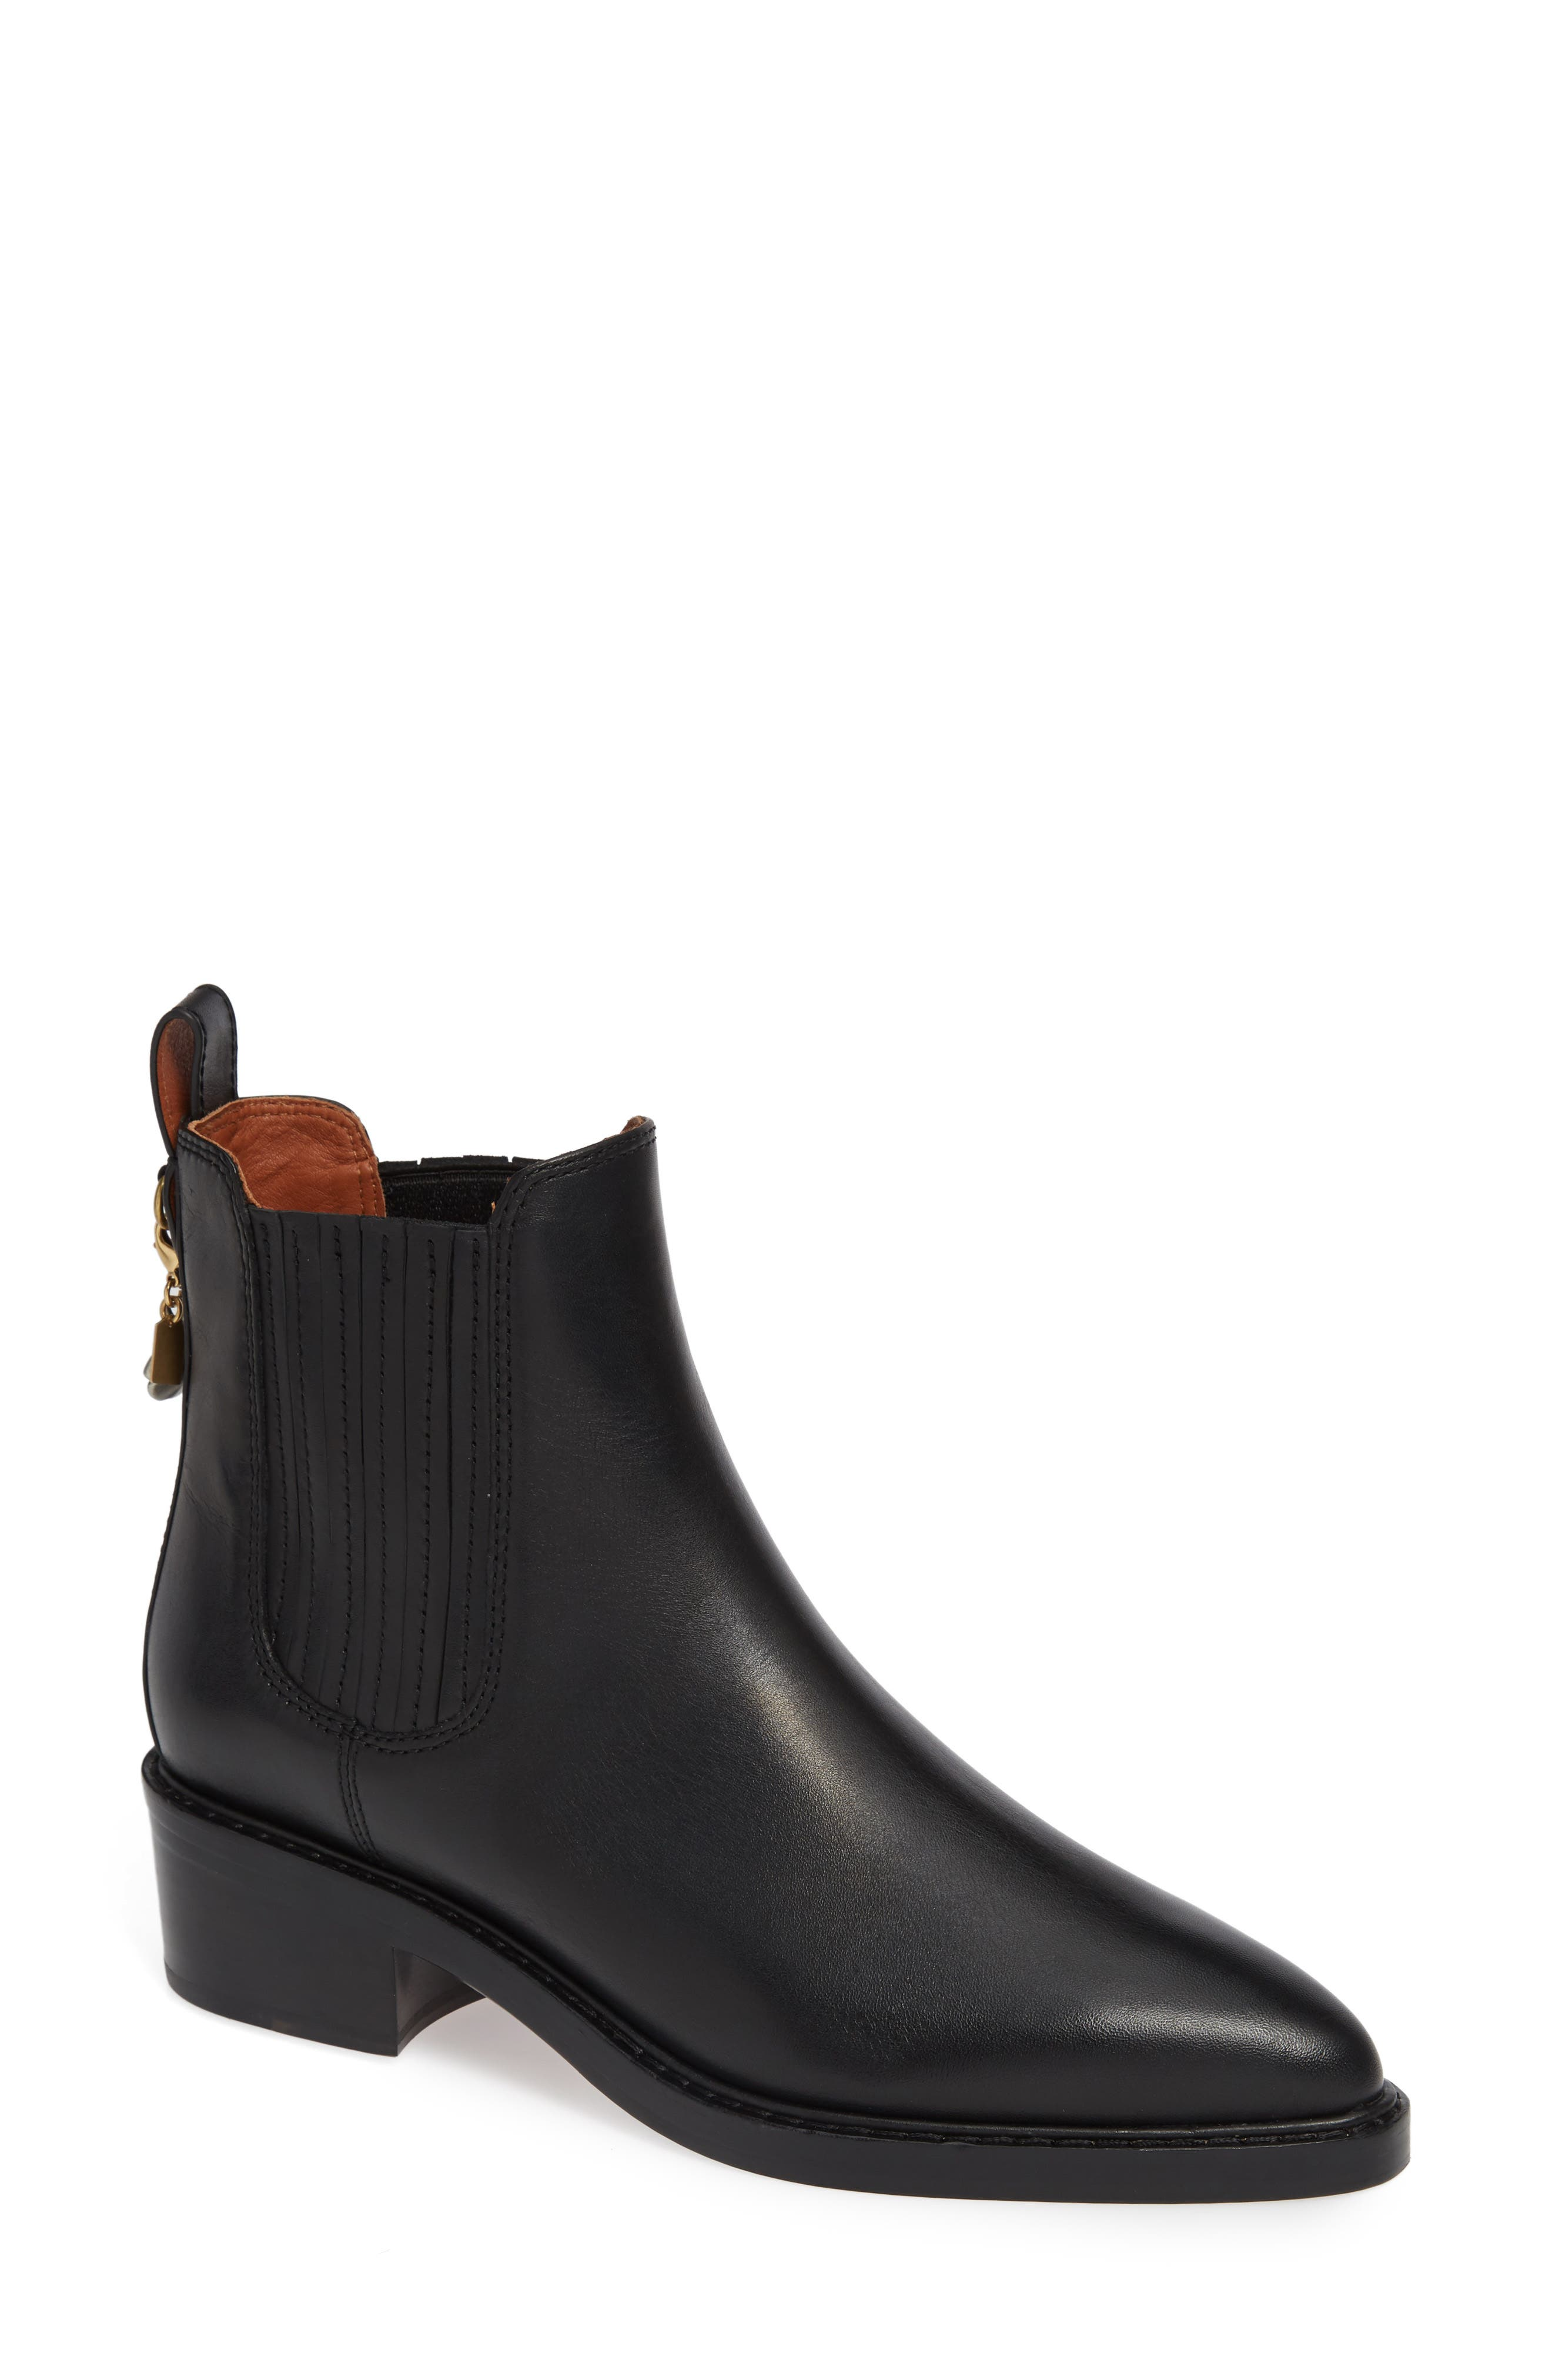 Bowery Chelsea Bootie,                             Main thumbnail 1, color,                             BLACK LEATHER